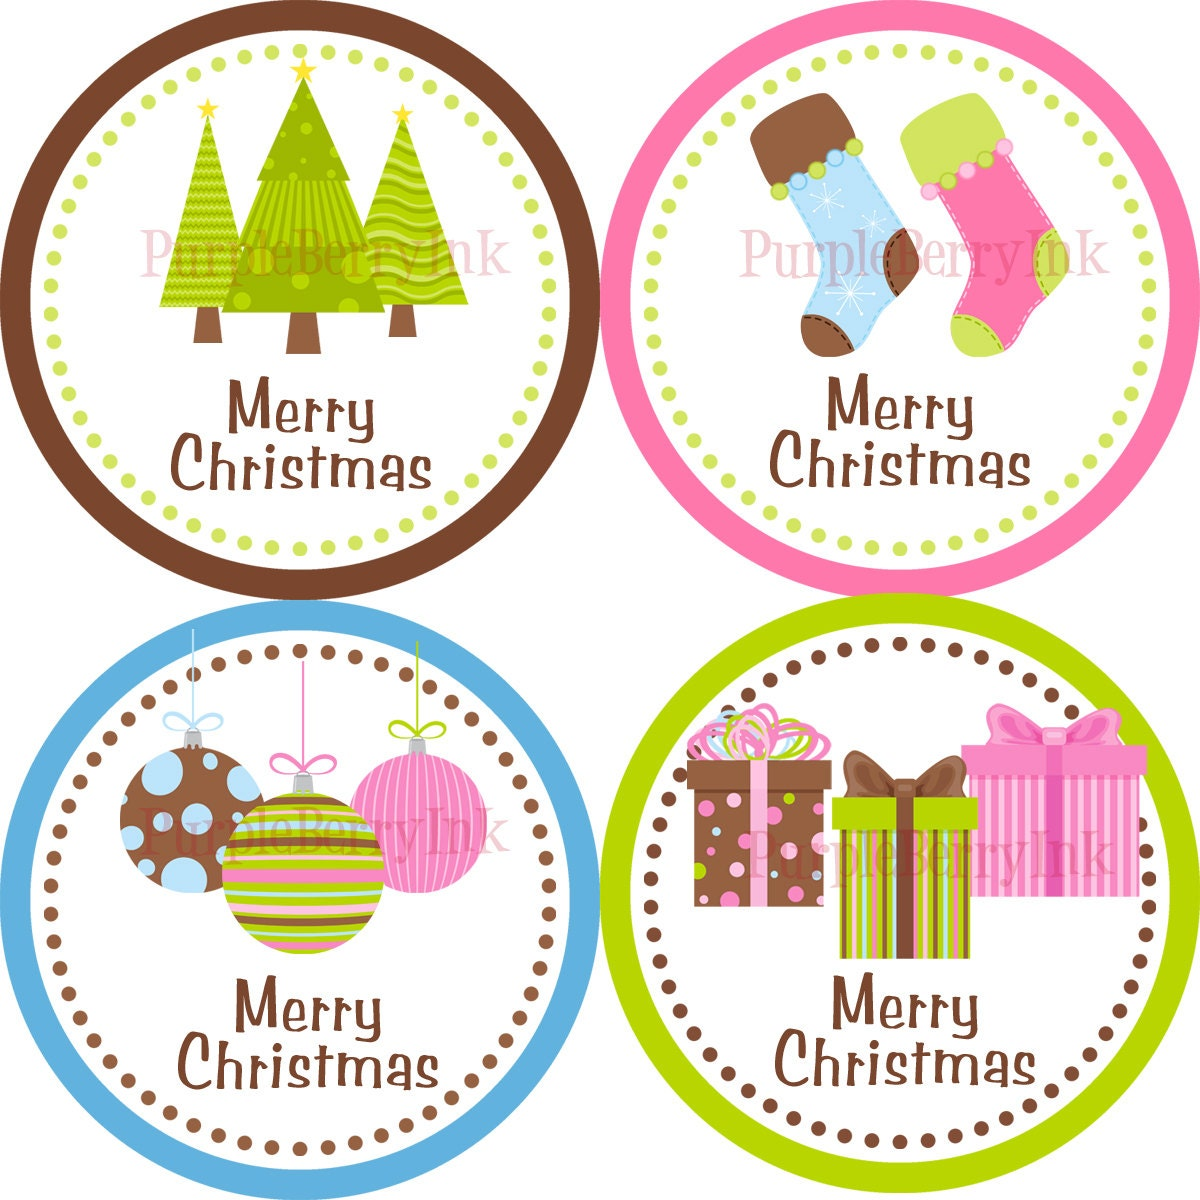 Christmas Stickers Pink Blue and Green Presents Ornaments